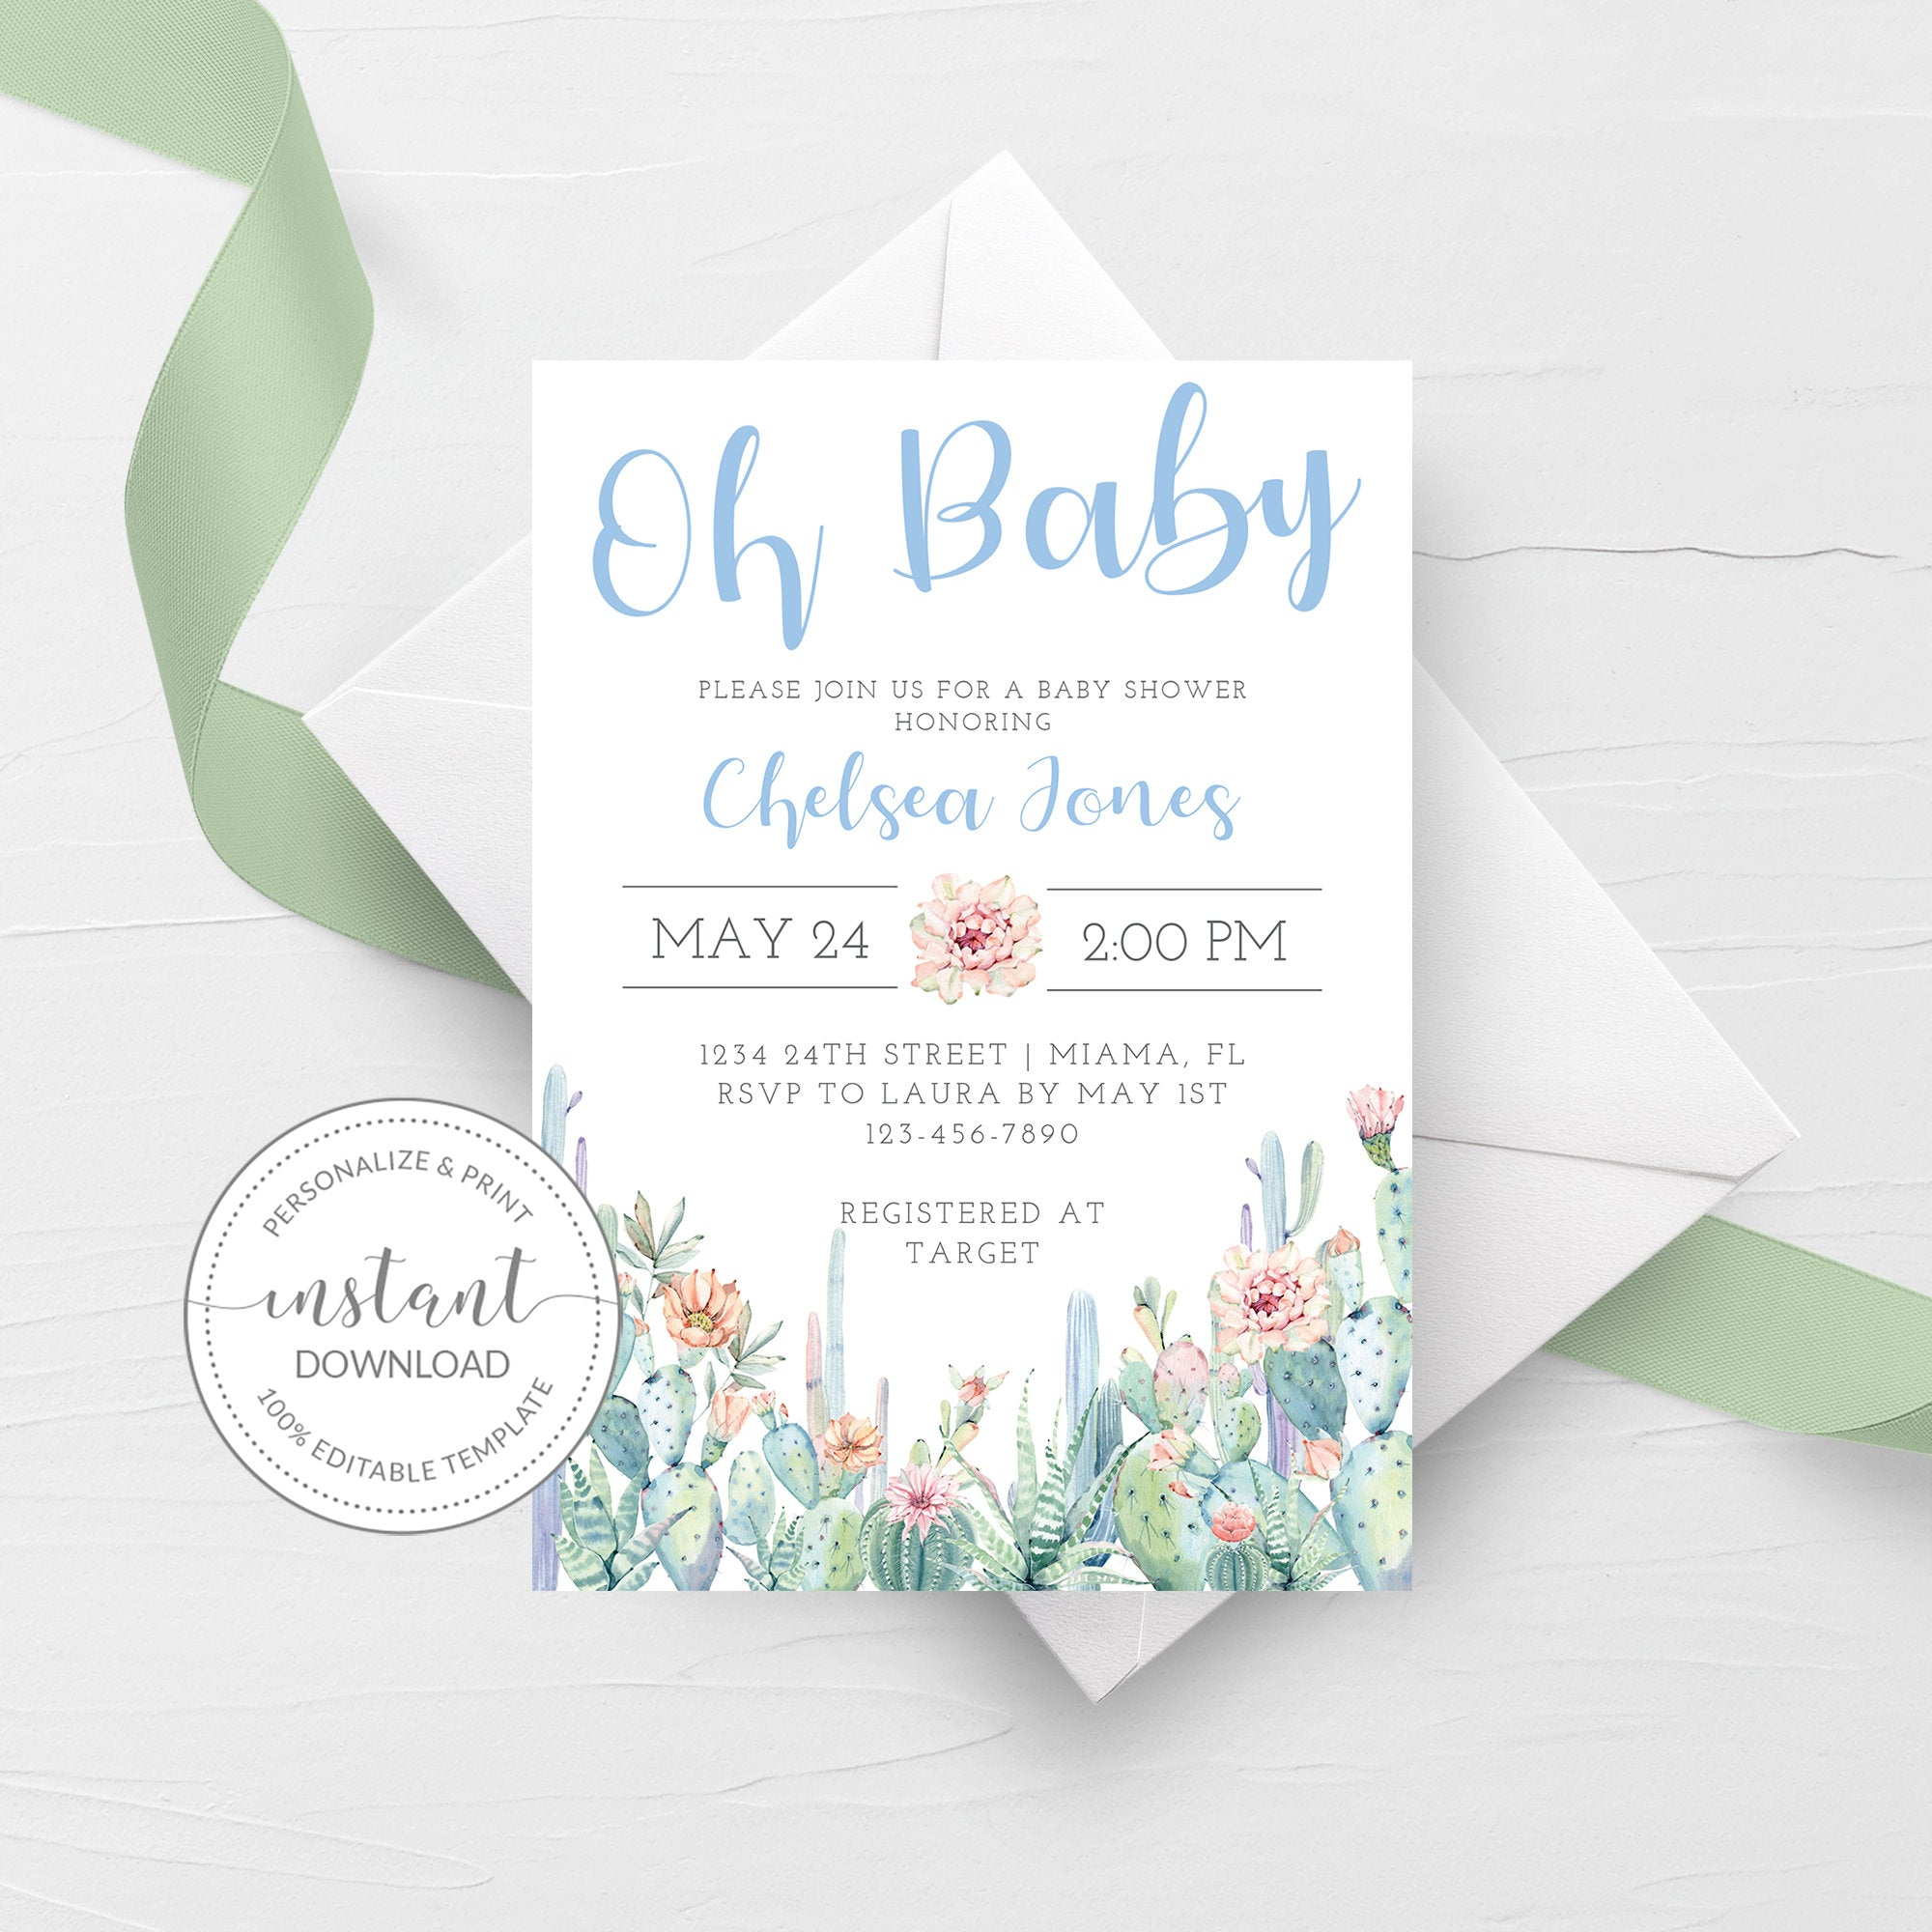 Cactus Baby Shower Invitation, Boy Baby Shower Invitation Template, Editable DIGITAL DOWNLOAD - CS100